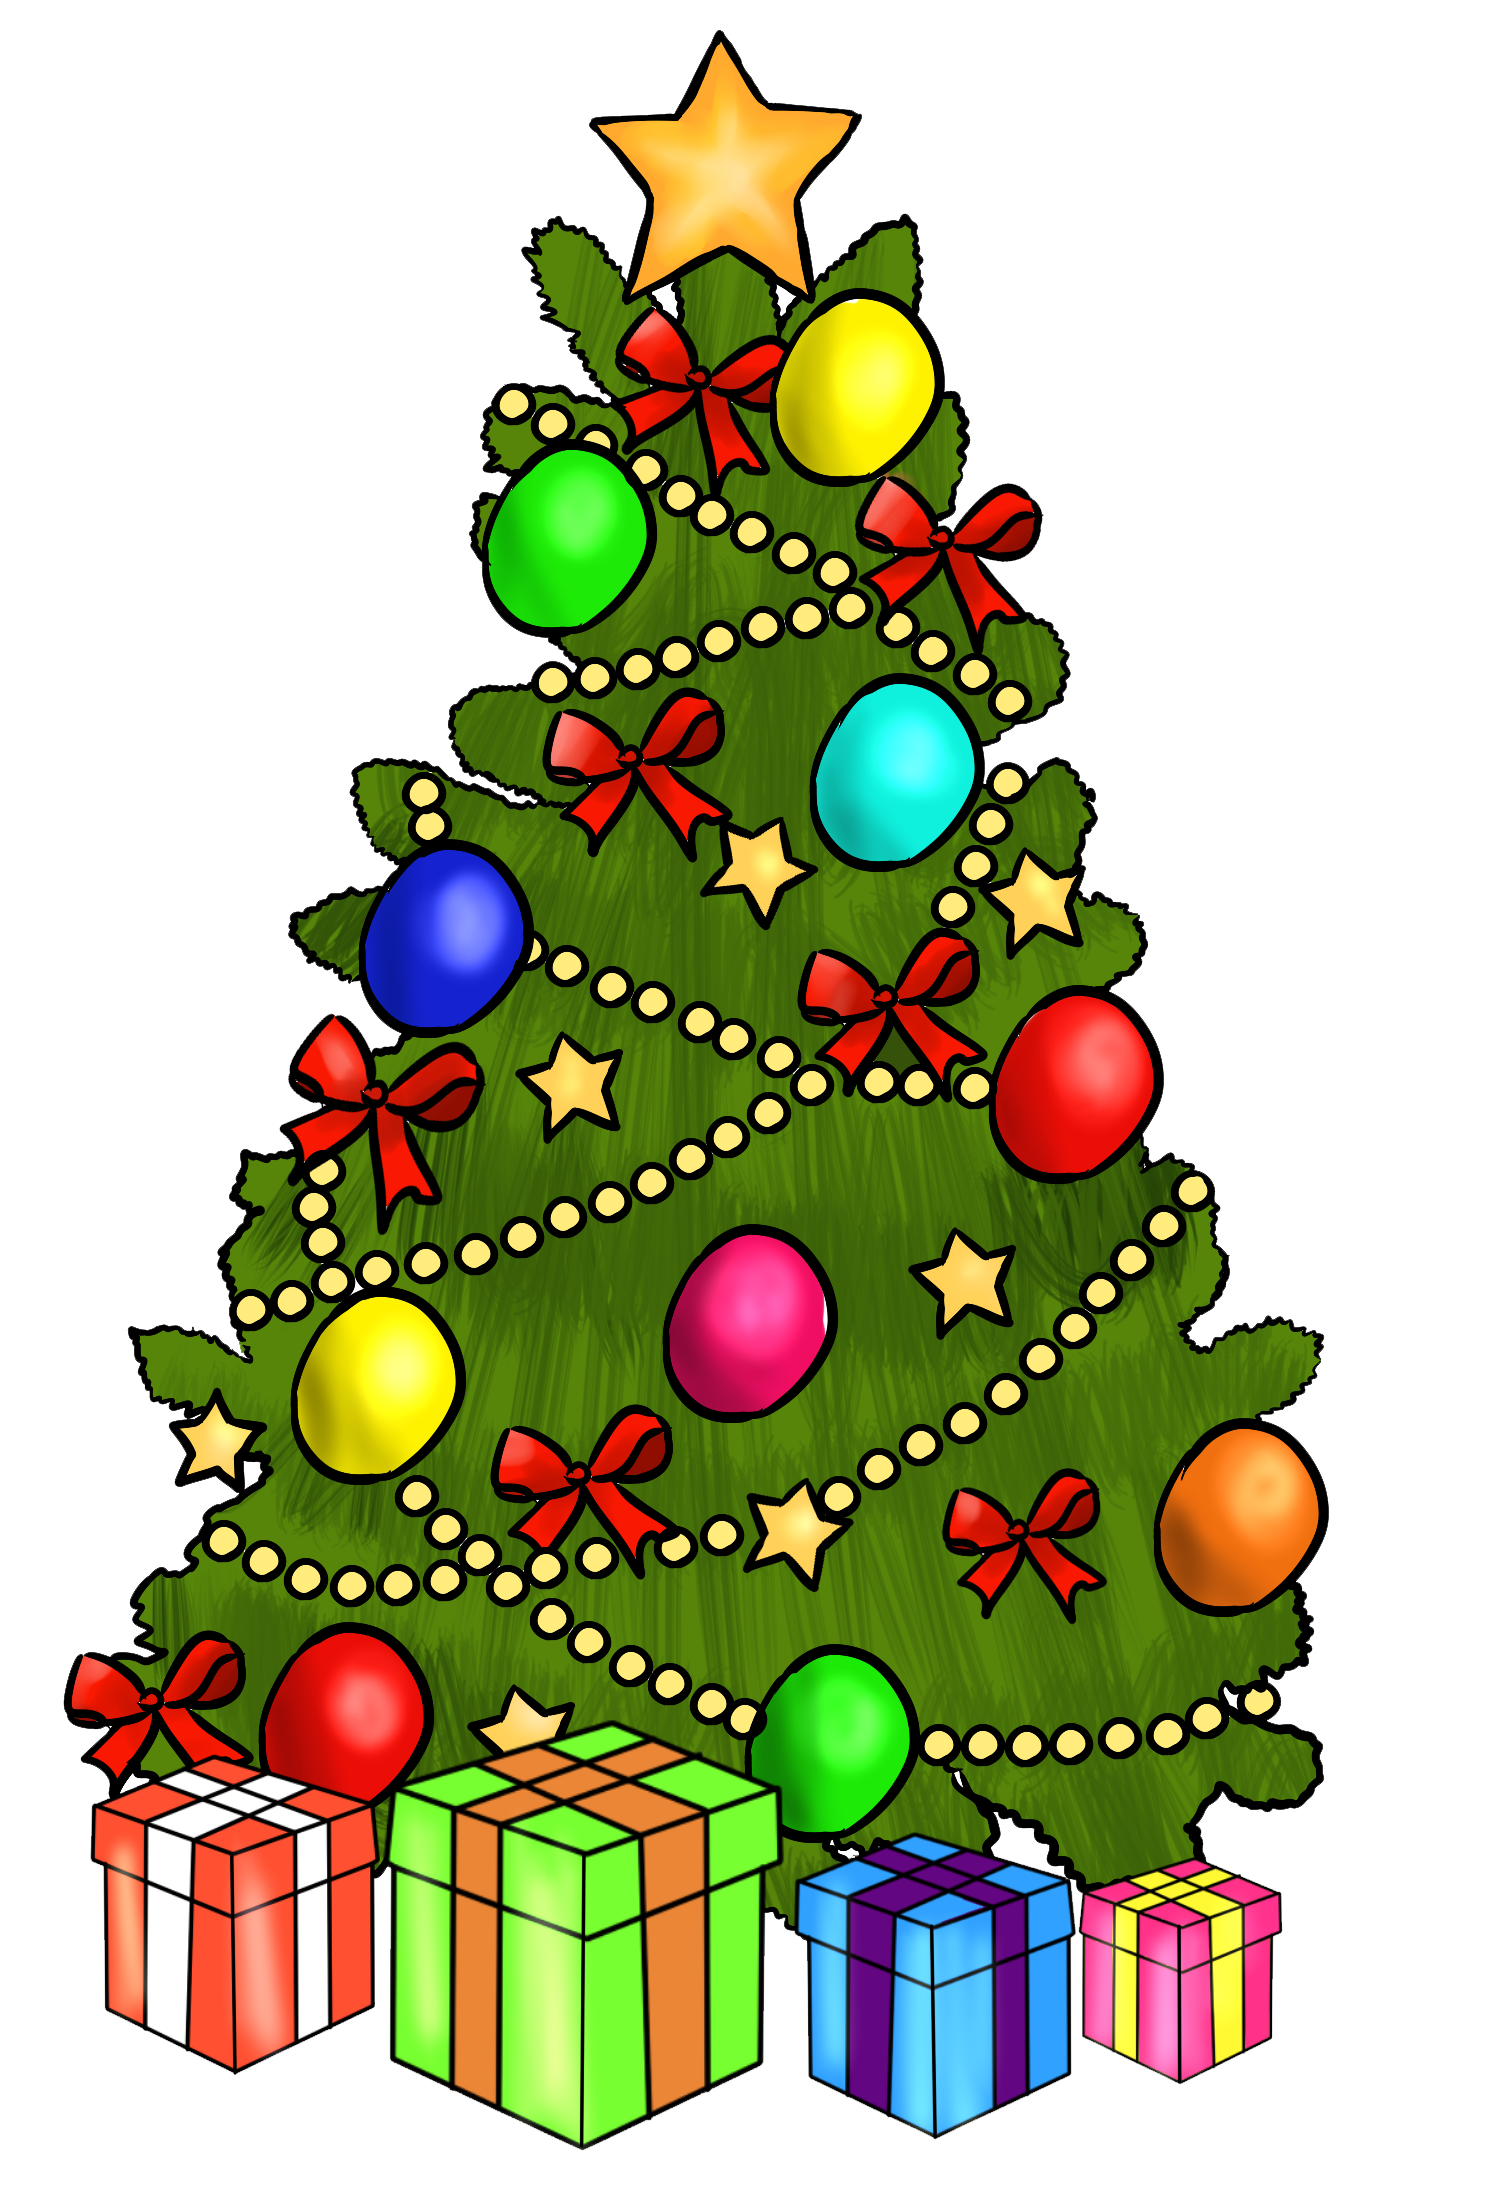 Christmas Tree clipart #15, Download drawings